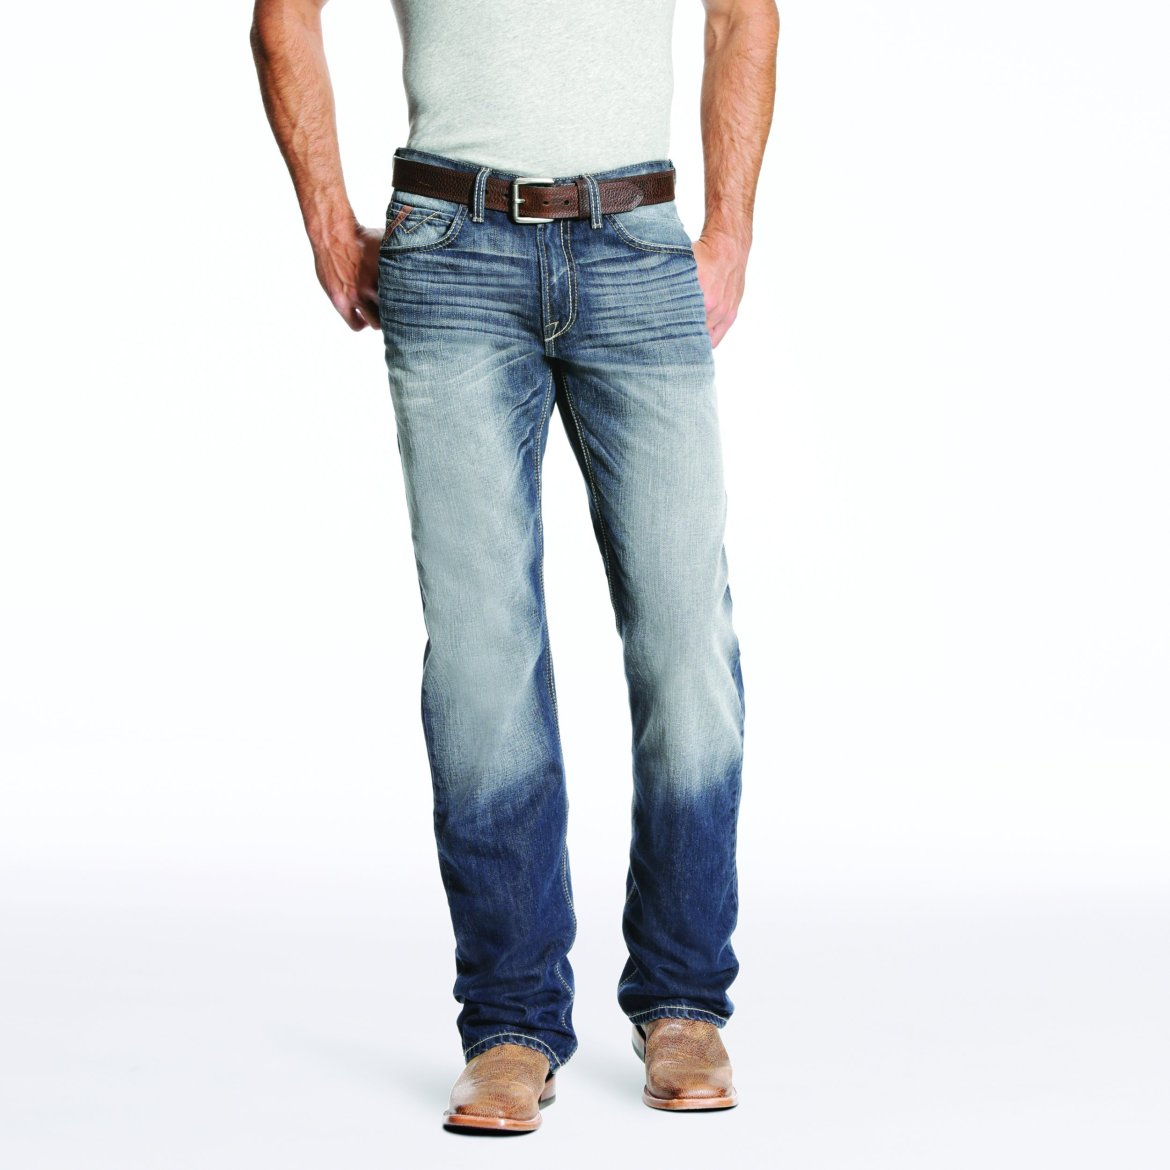 The Best Men's Jeans Styles To Elevate Every Look